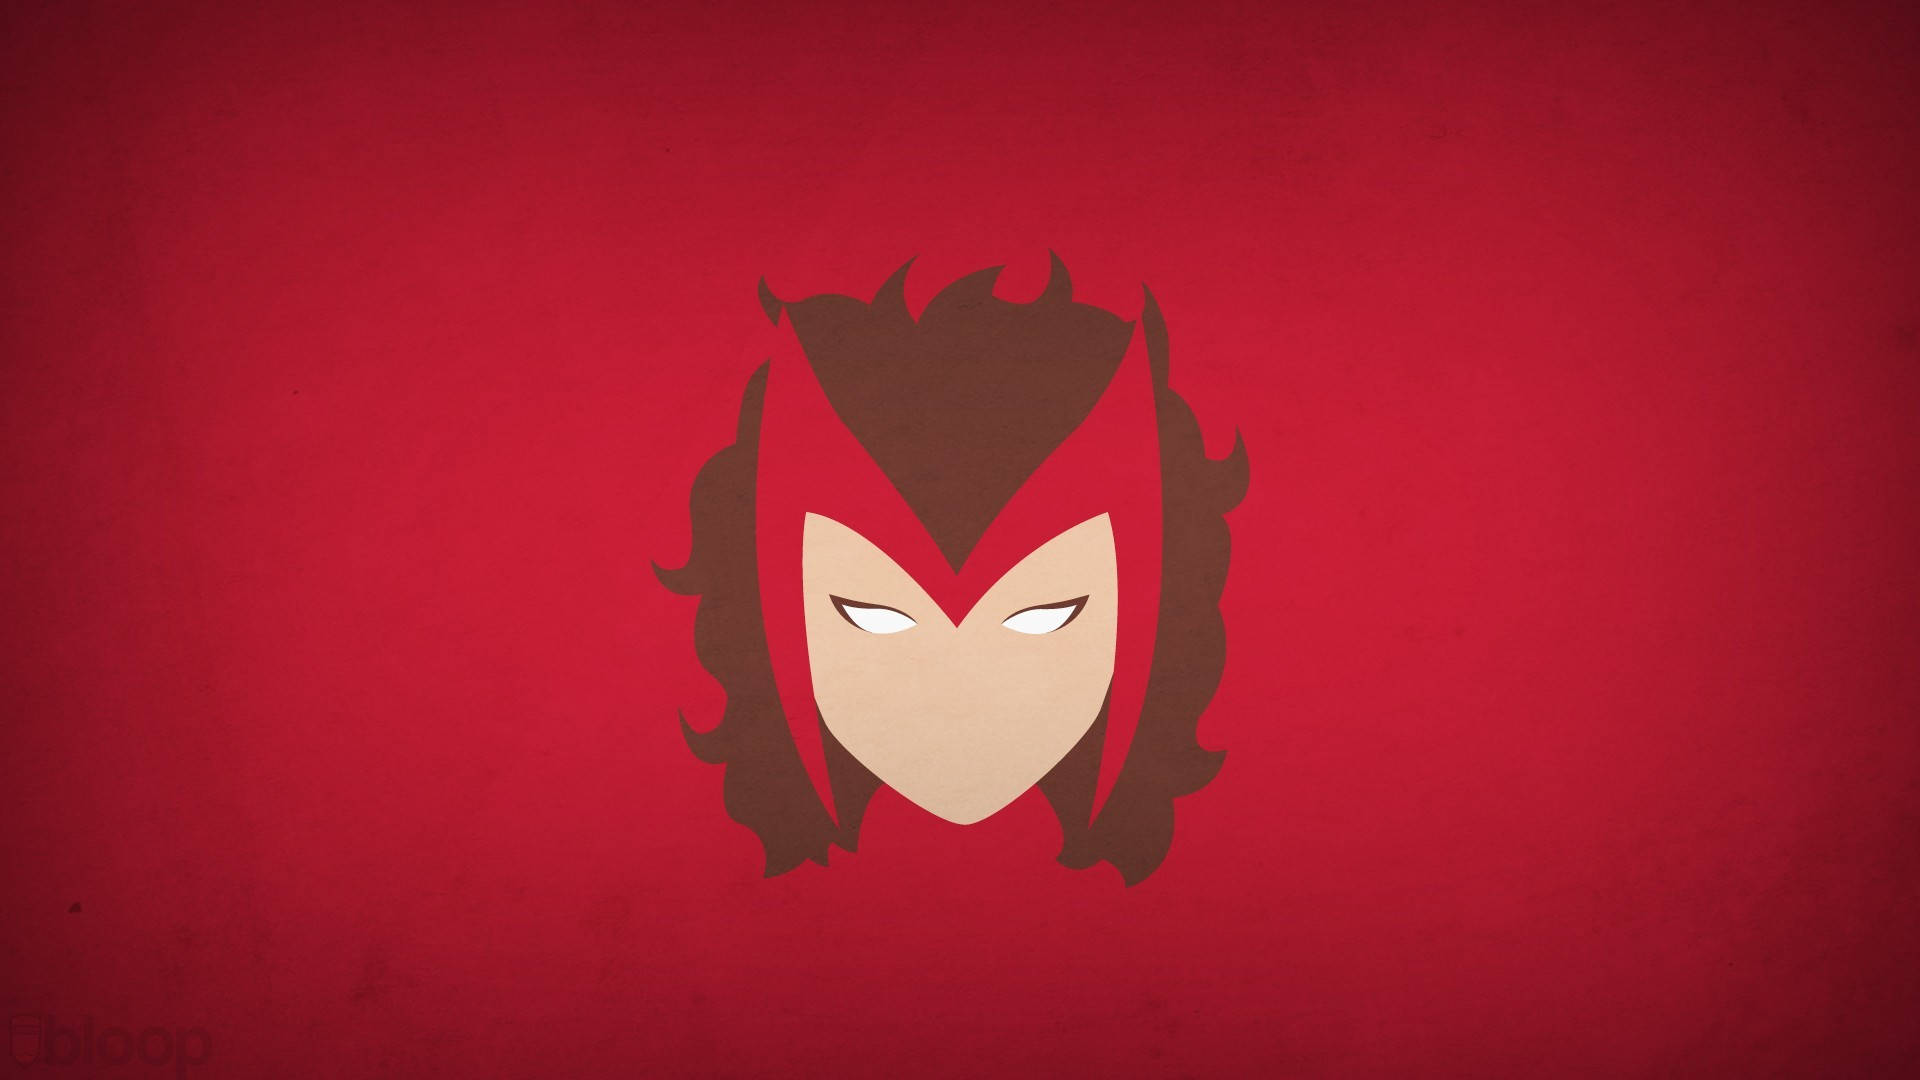 Blo0p Marvel Comics Minimalistic Red Background Scarlet Witch Superheroes